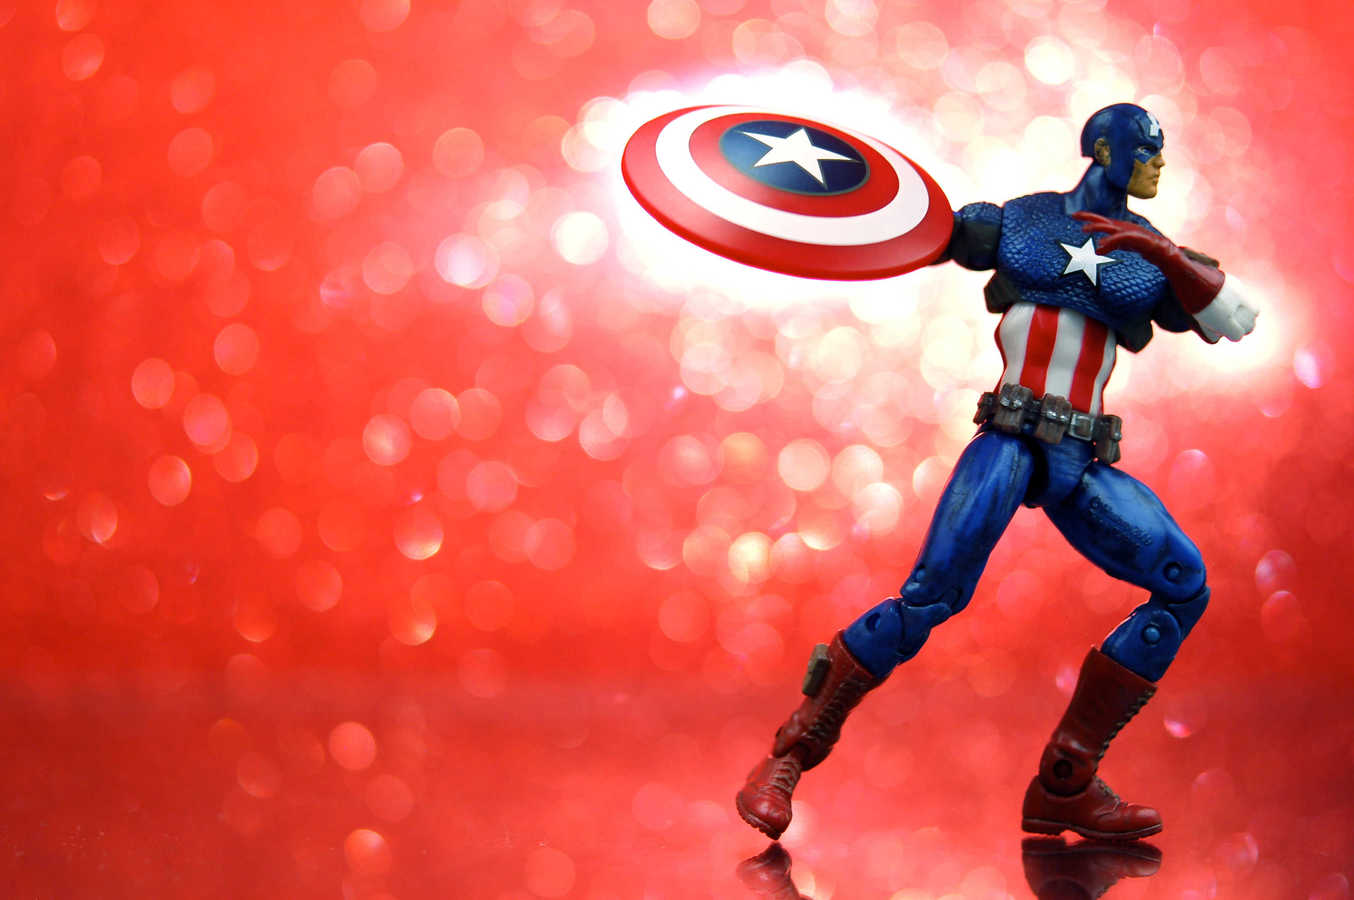 payscale - 5 Ways to Avoid Civil War in the Office